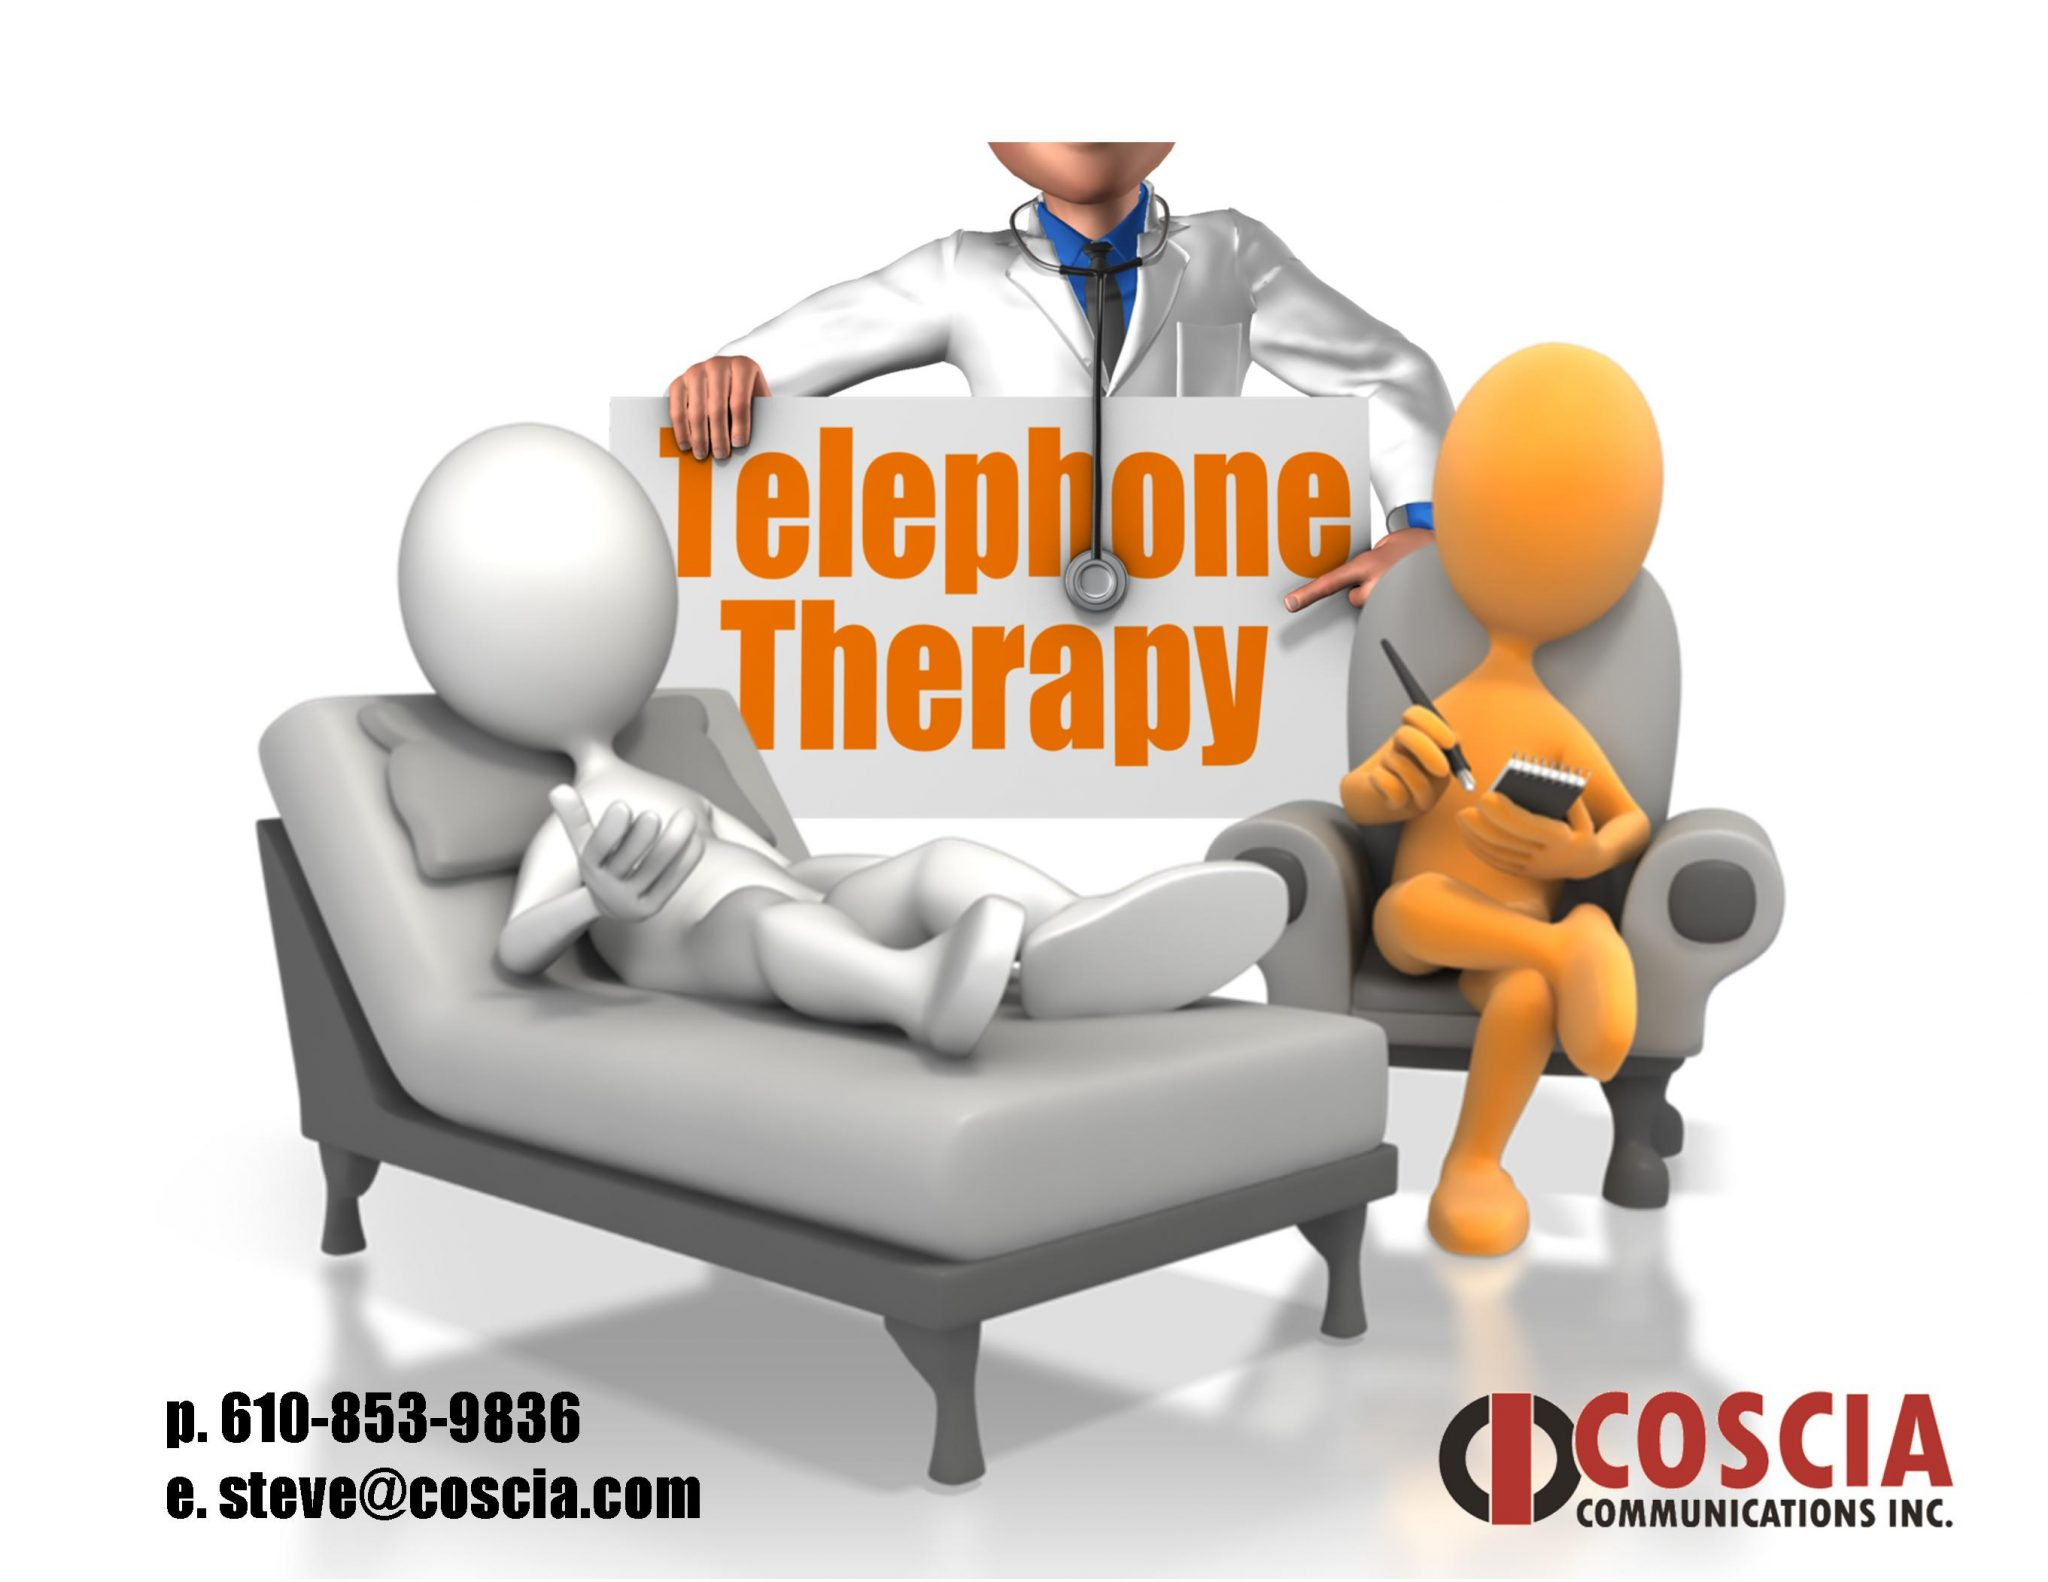 Telephone-Therapy